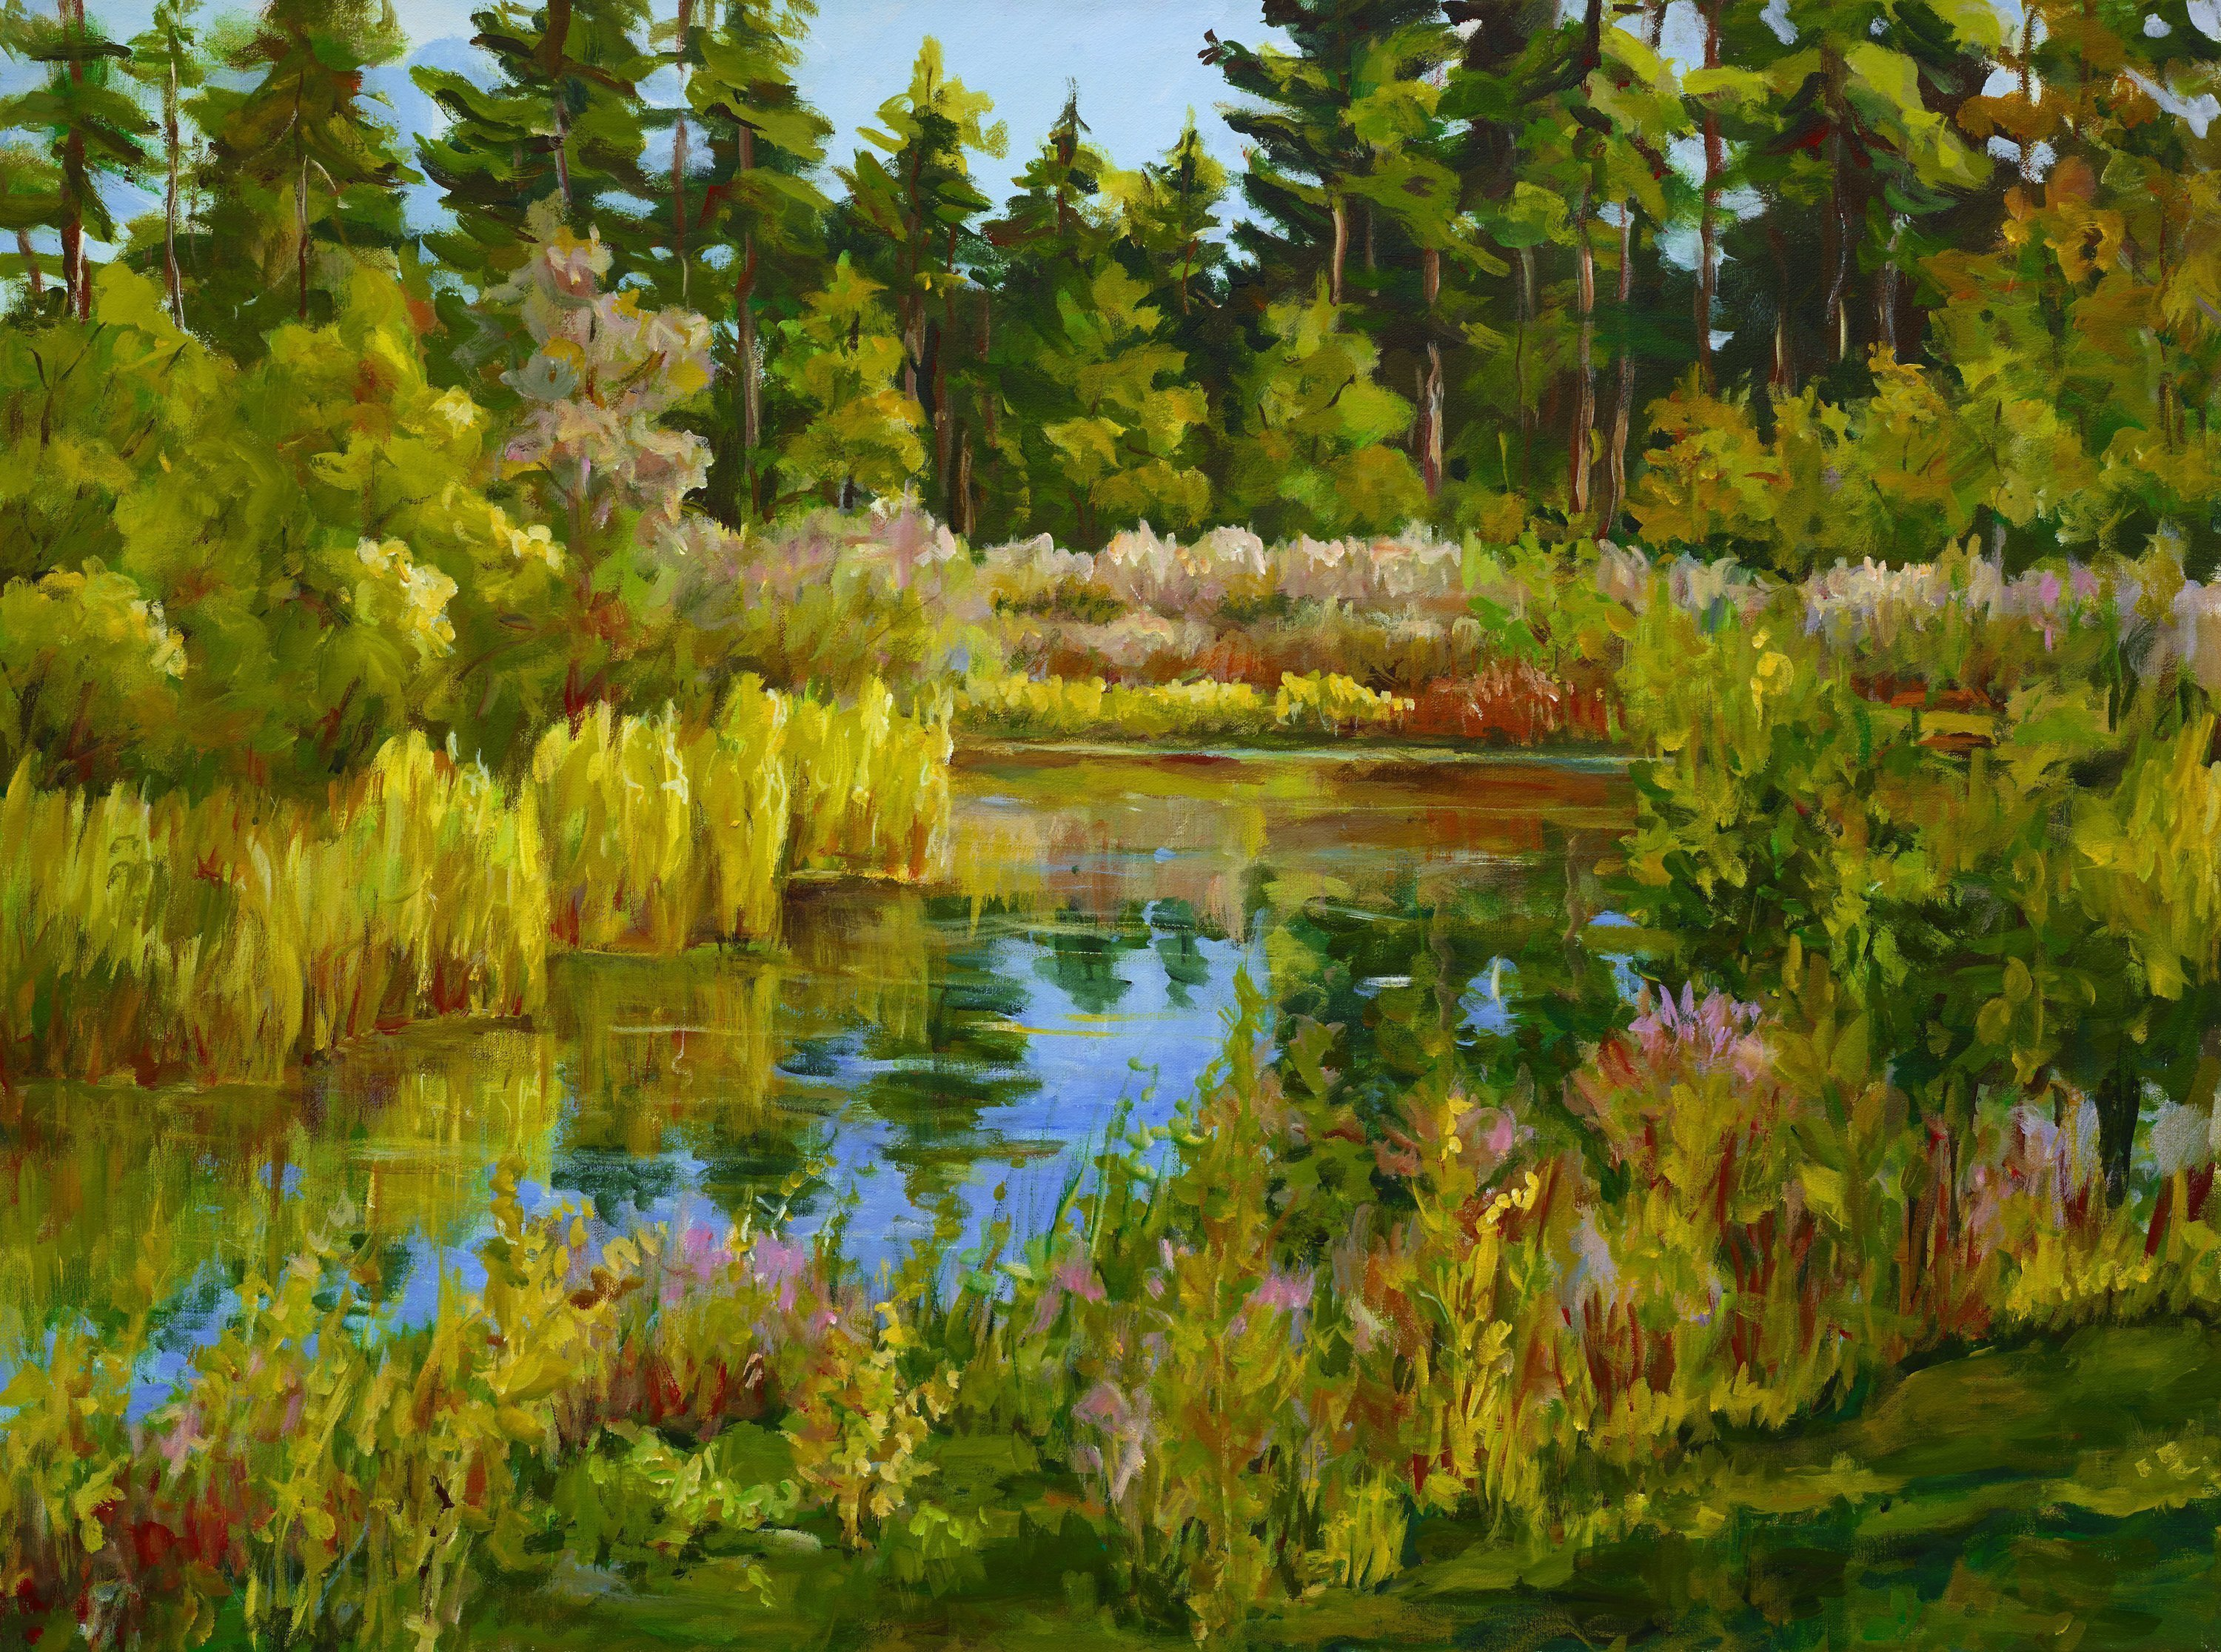 Trees Acrylic Painting by Ingrid Neuhofer Dohm Title: Rock Valley College Pond, created in 2014